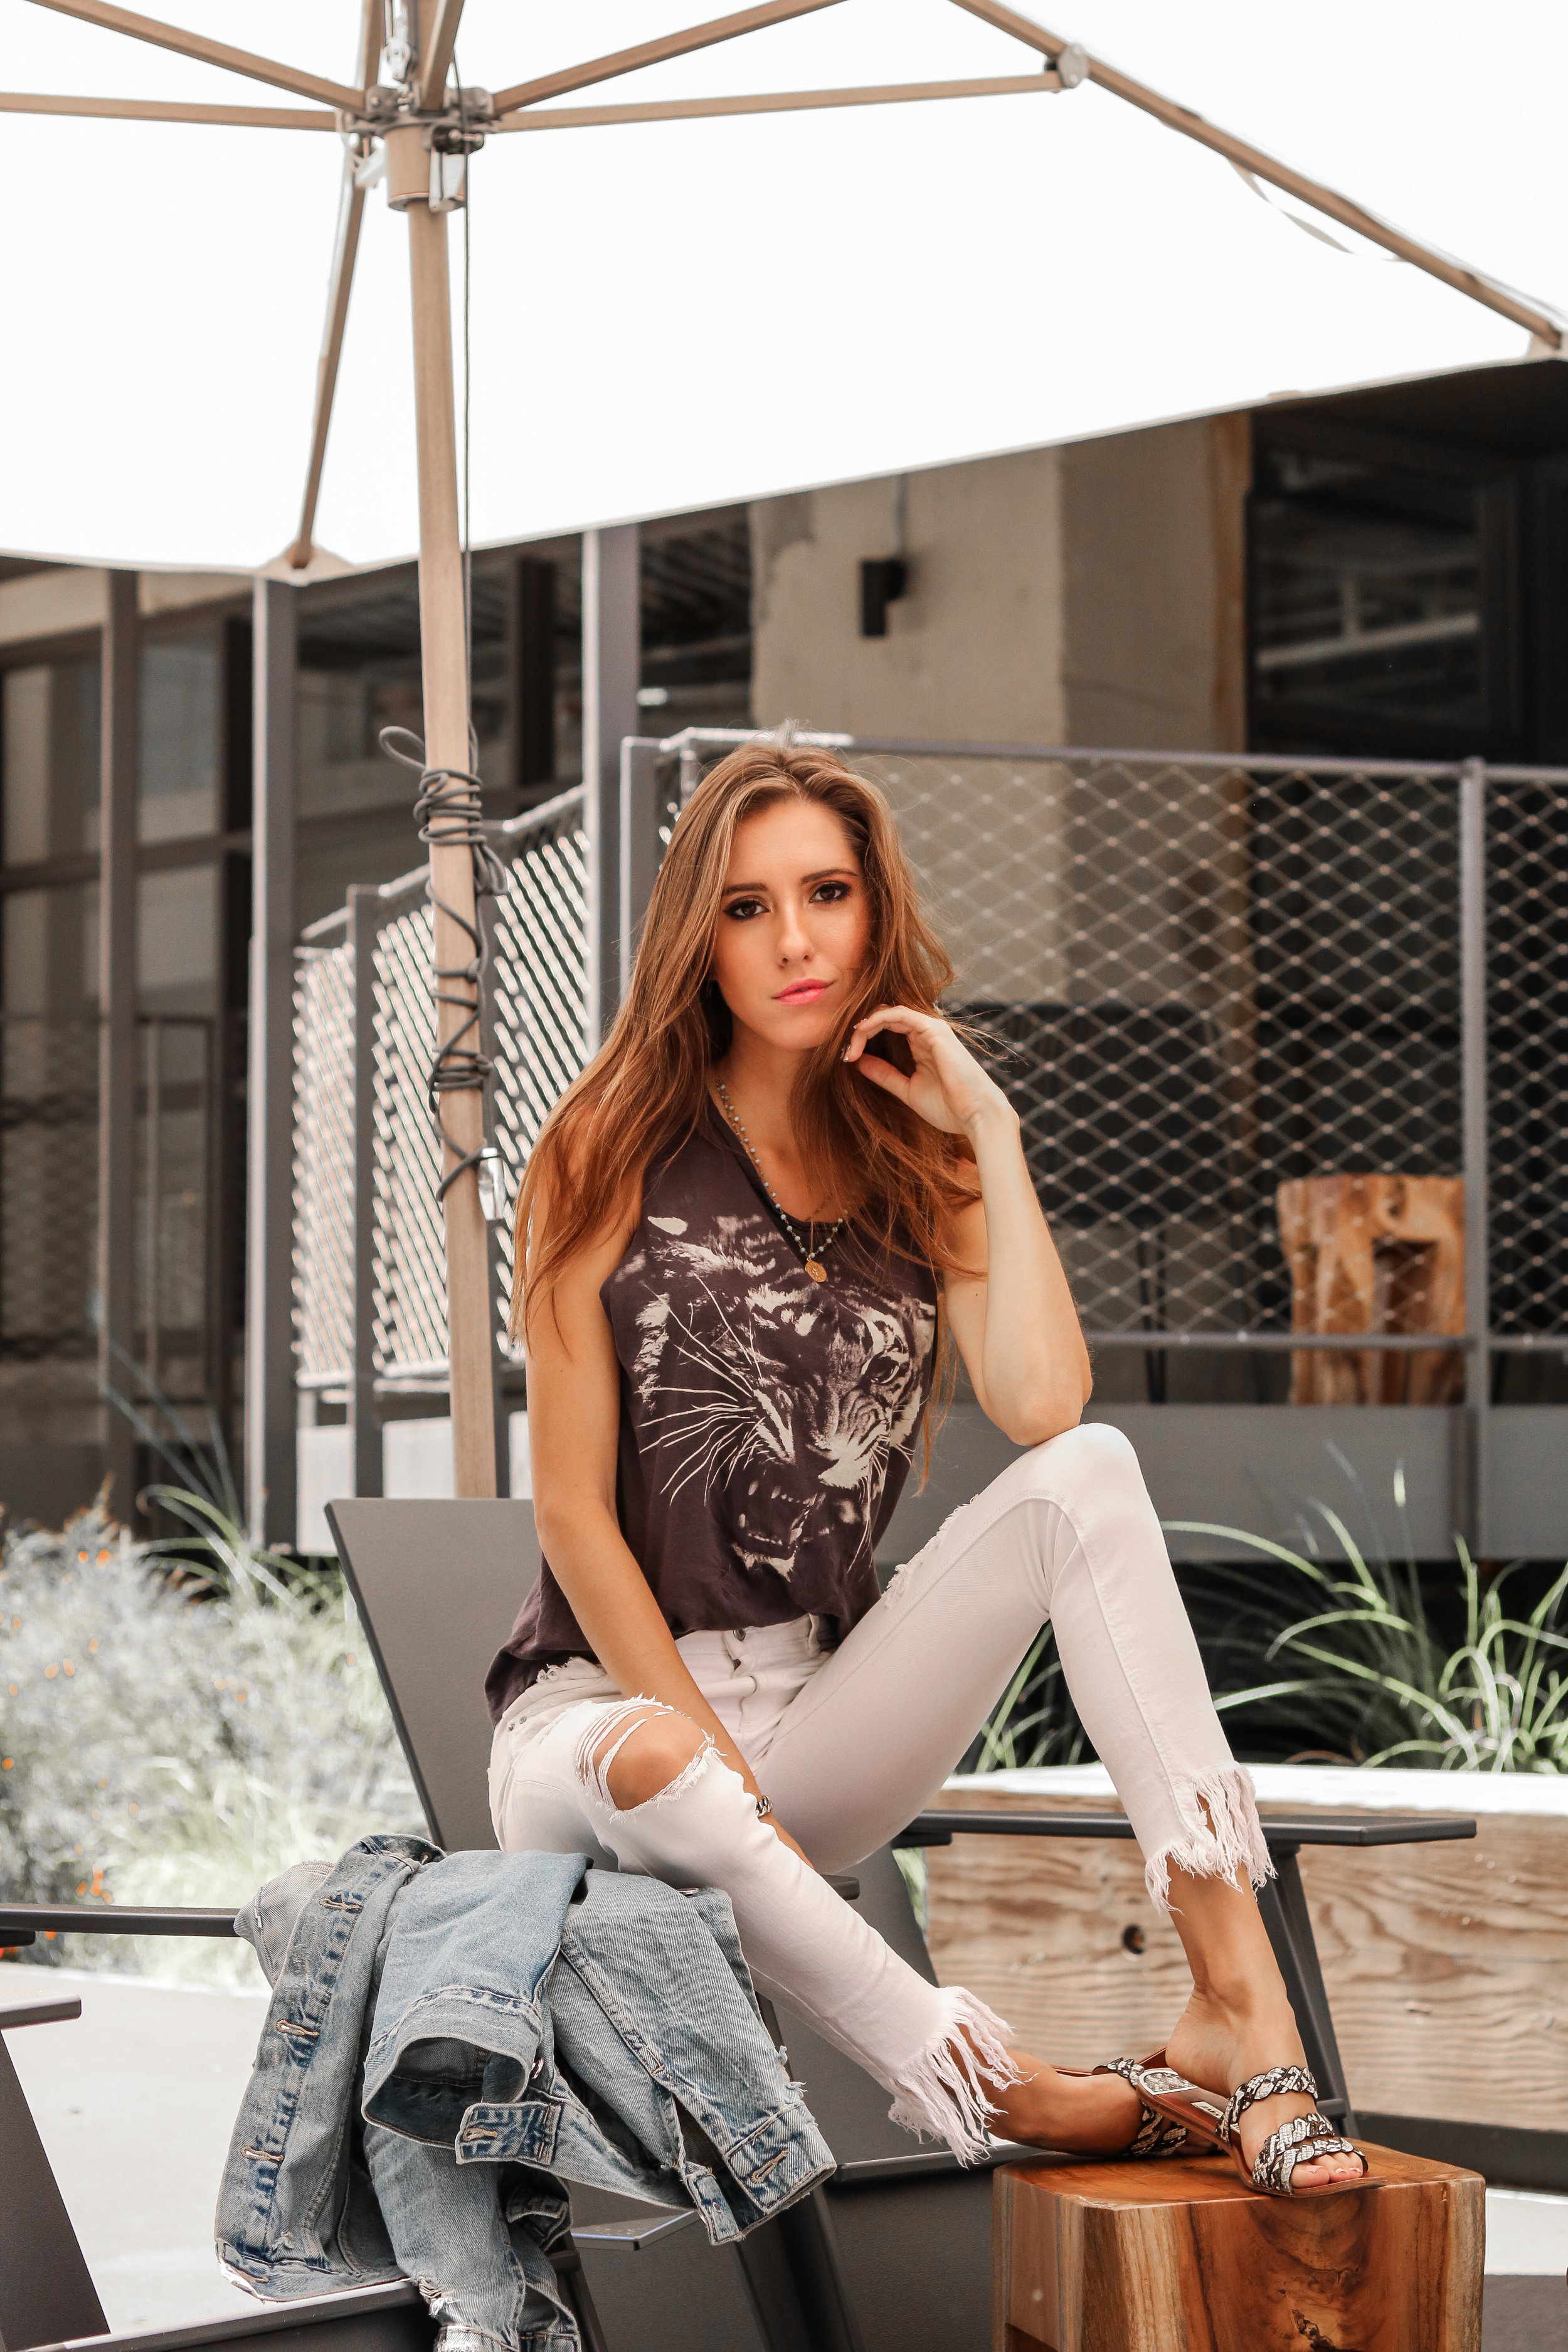 The Hungarian Brunette 3 ways to wear a denim jacket for summer The Mom Look: With white jeans and a graphic tank